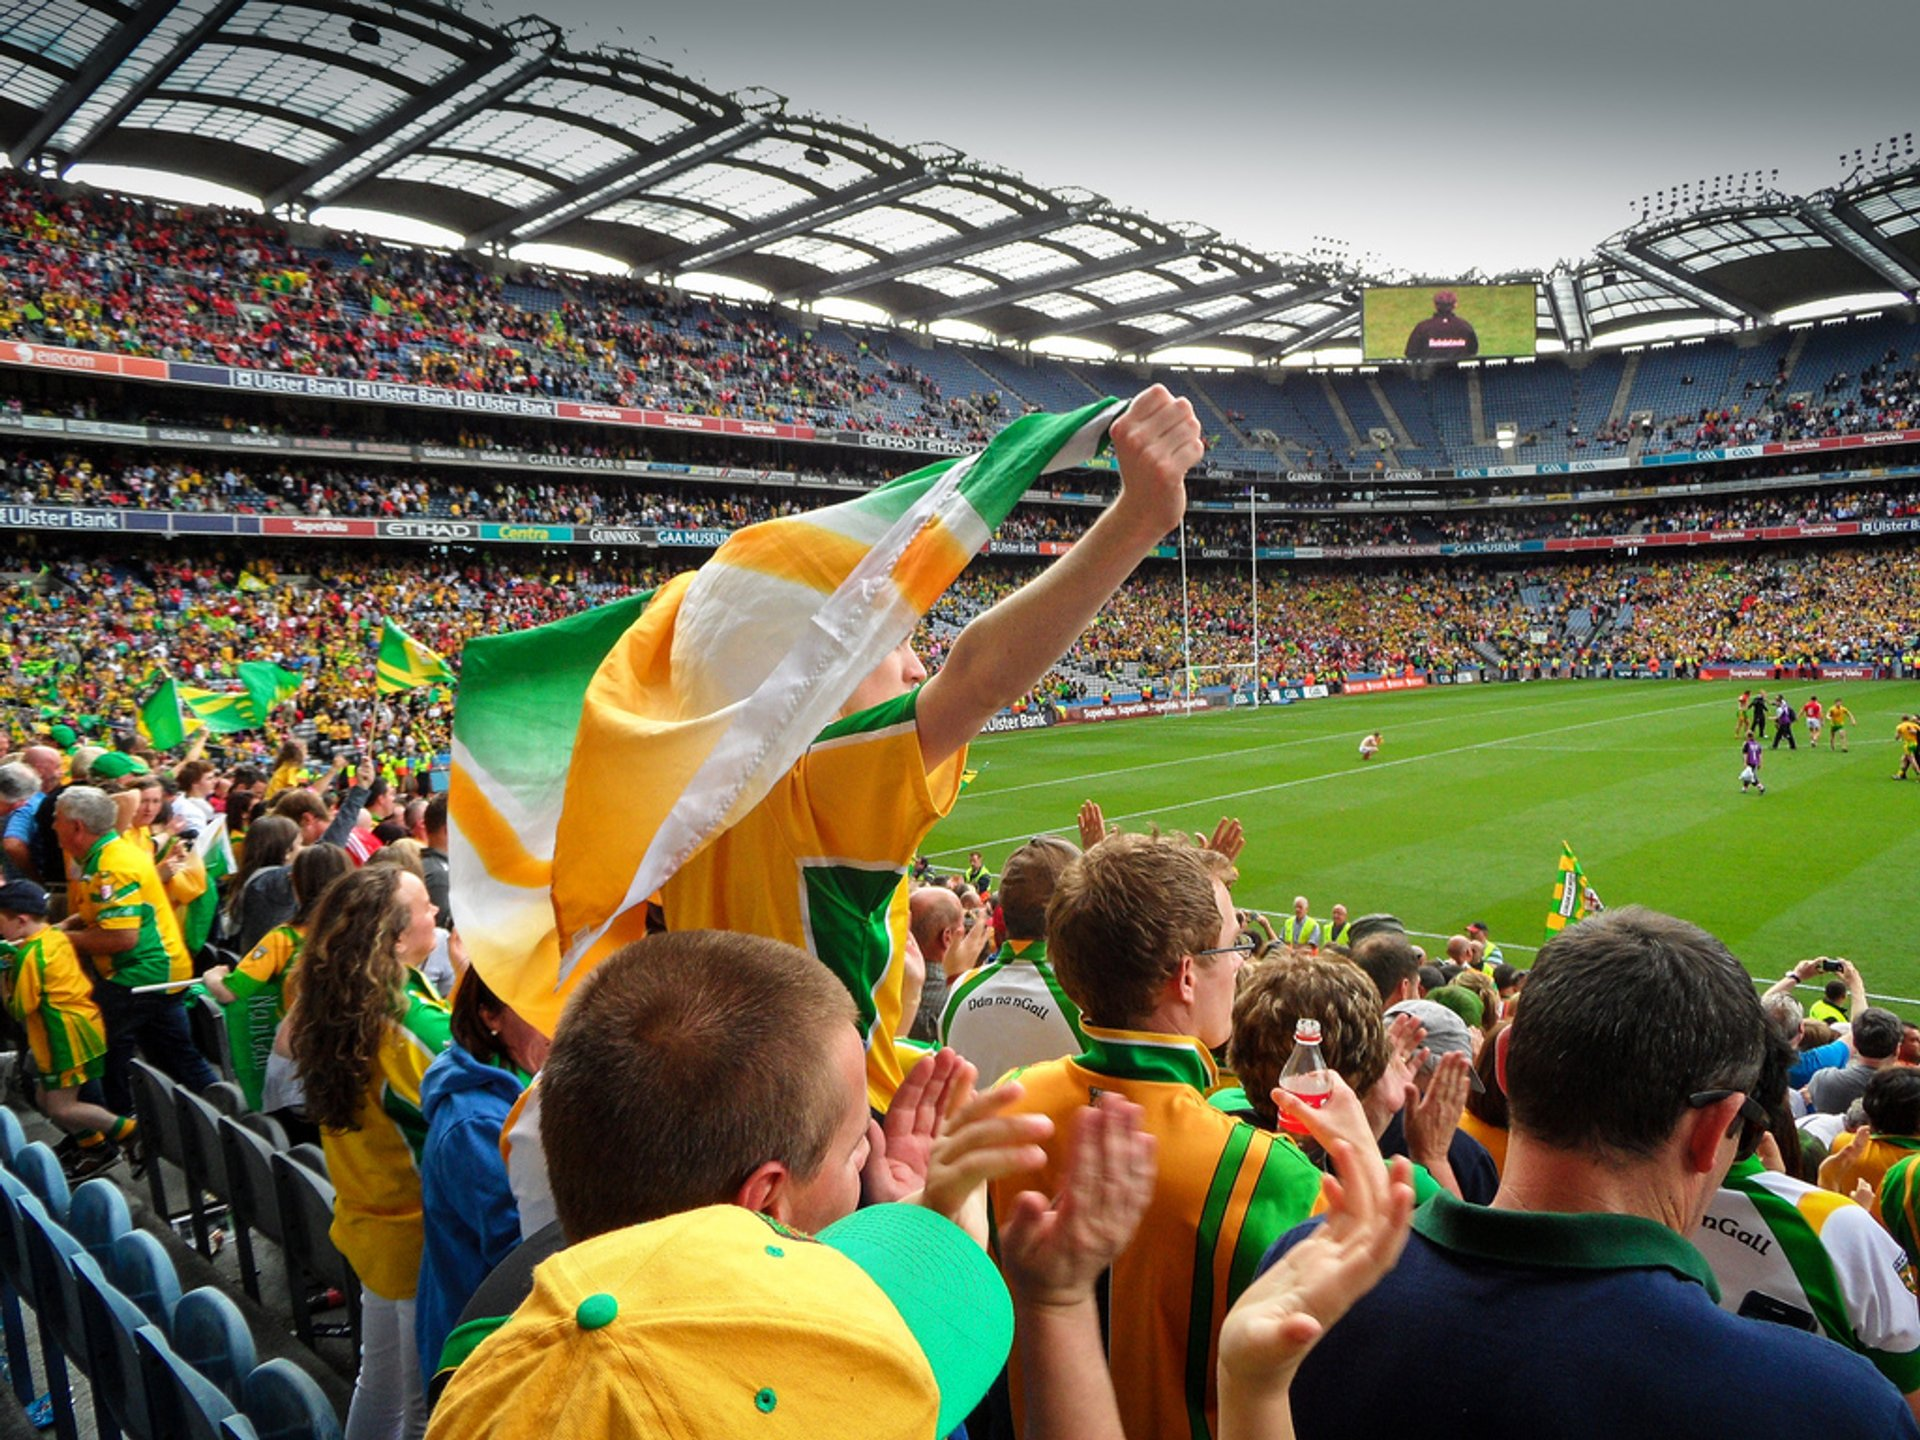 Gaelic Football in Ireland - Best Season 2020